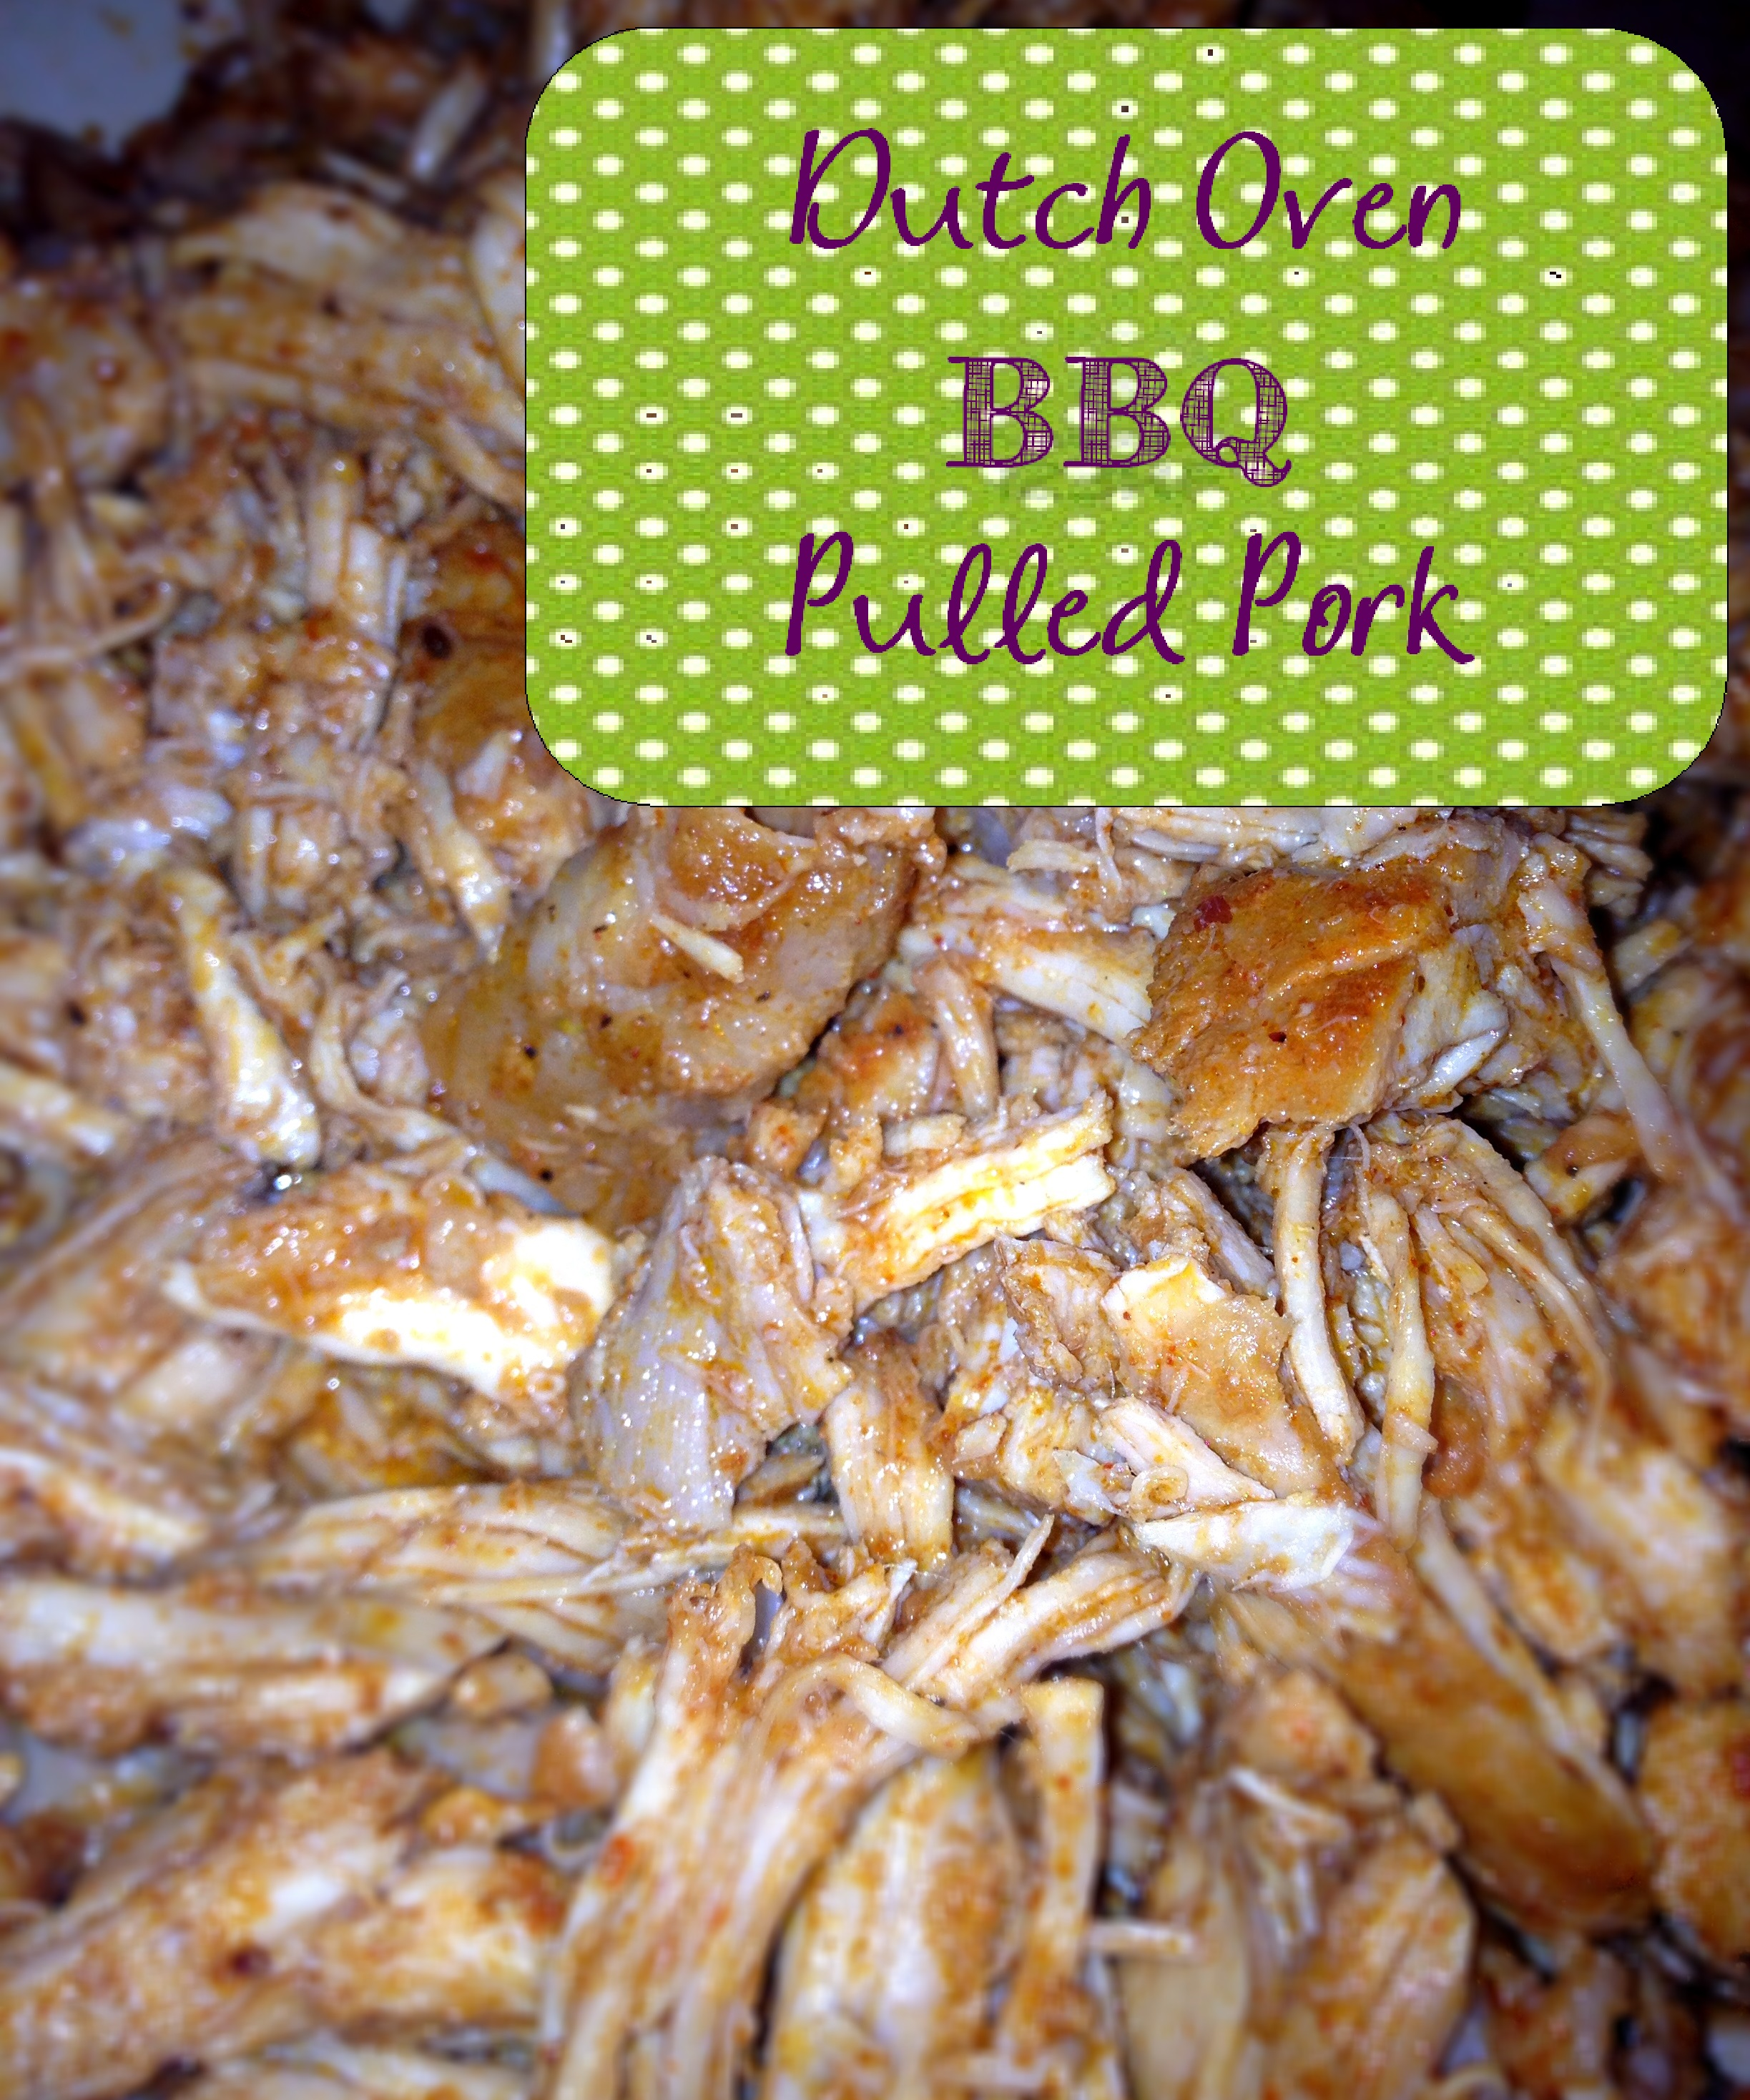 Recipe:  Pork – Dutch Oven BBQ Pulled Pork